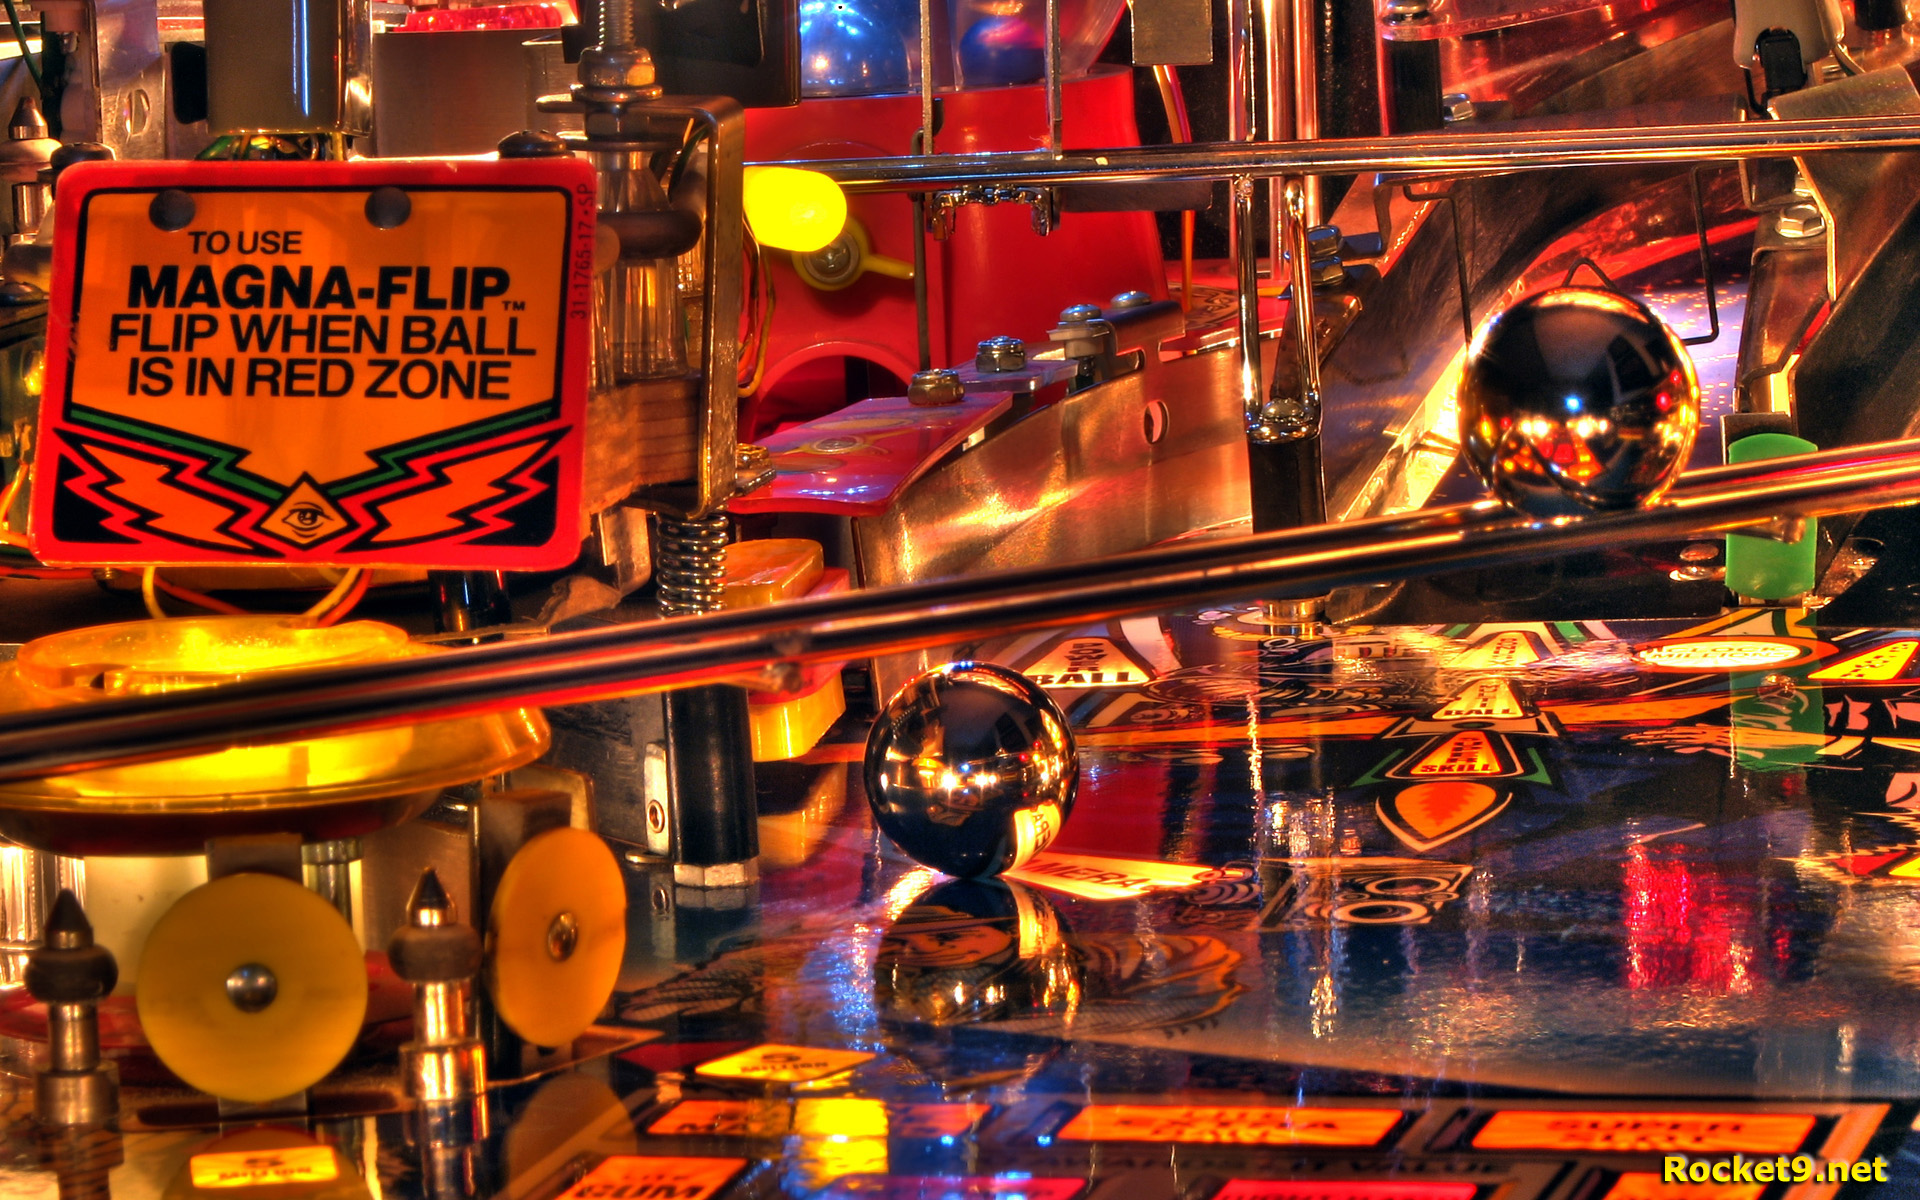 Iphone X Inside Wallpaper Hd Twilight Zone Pinball Hdr Full Hd Wallpaper And Background